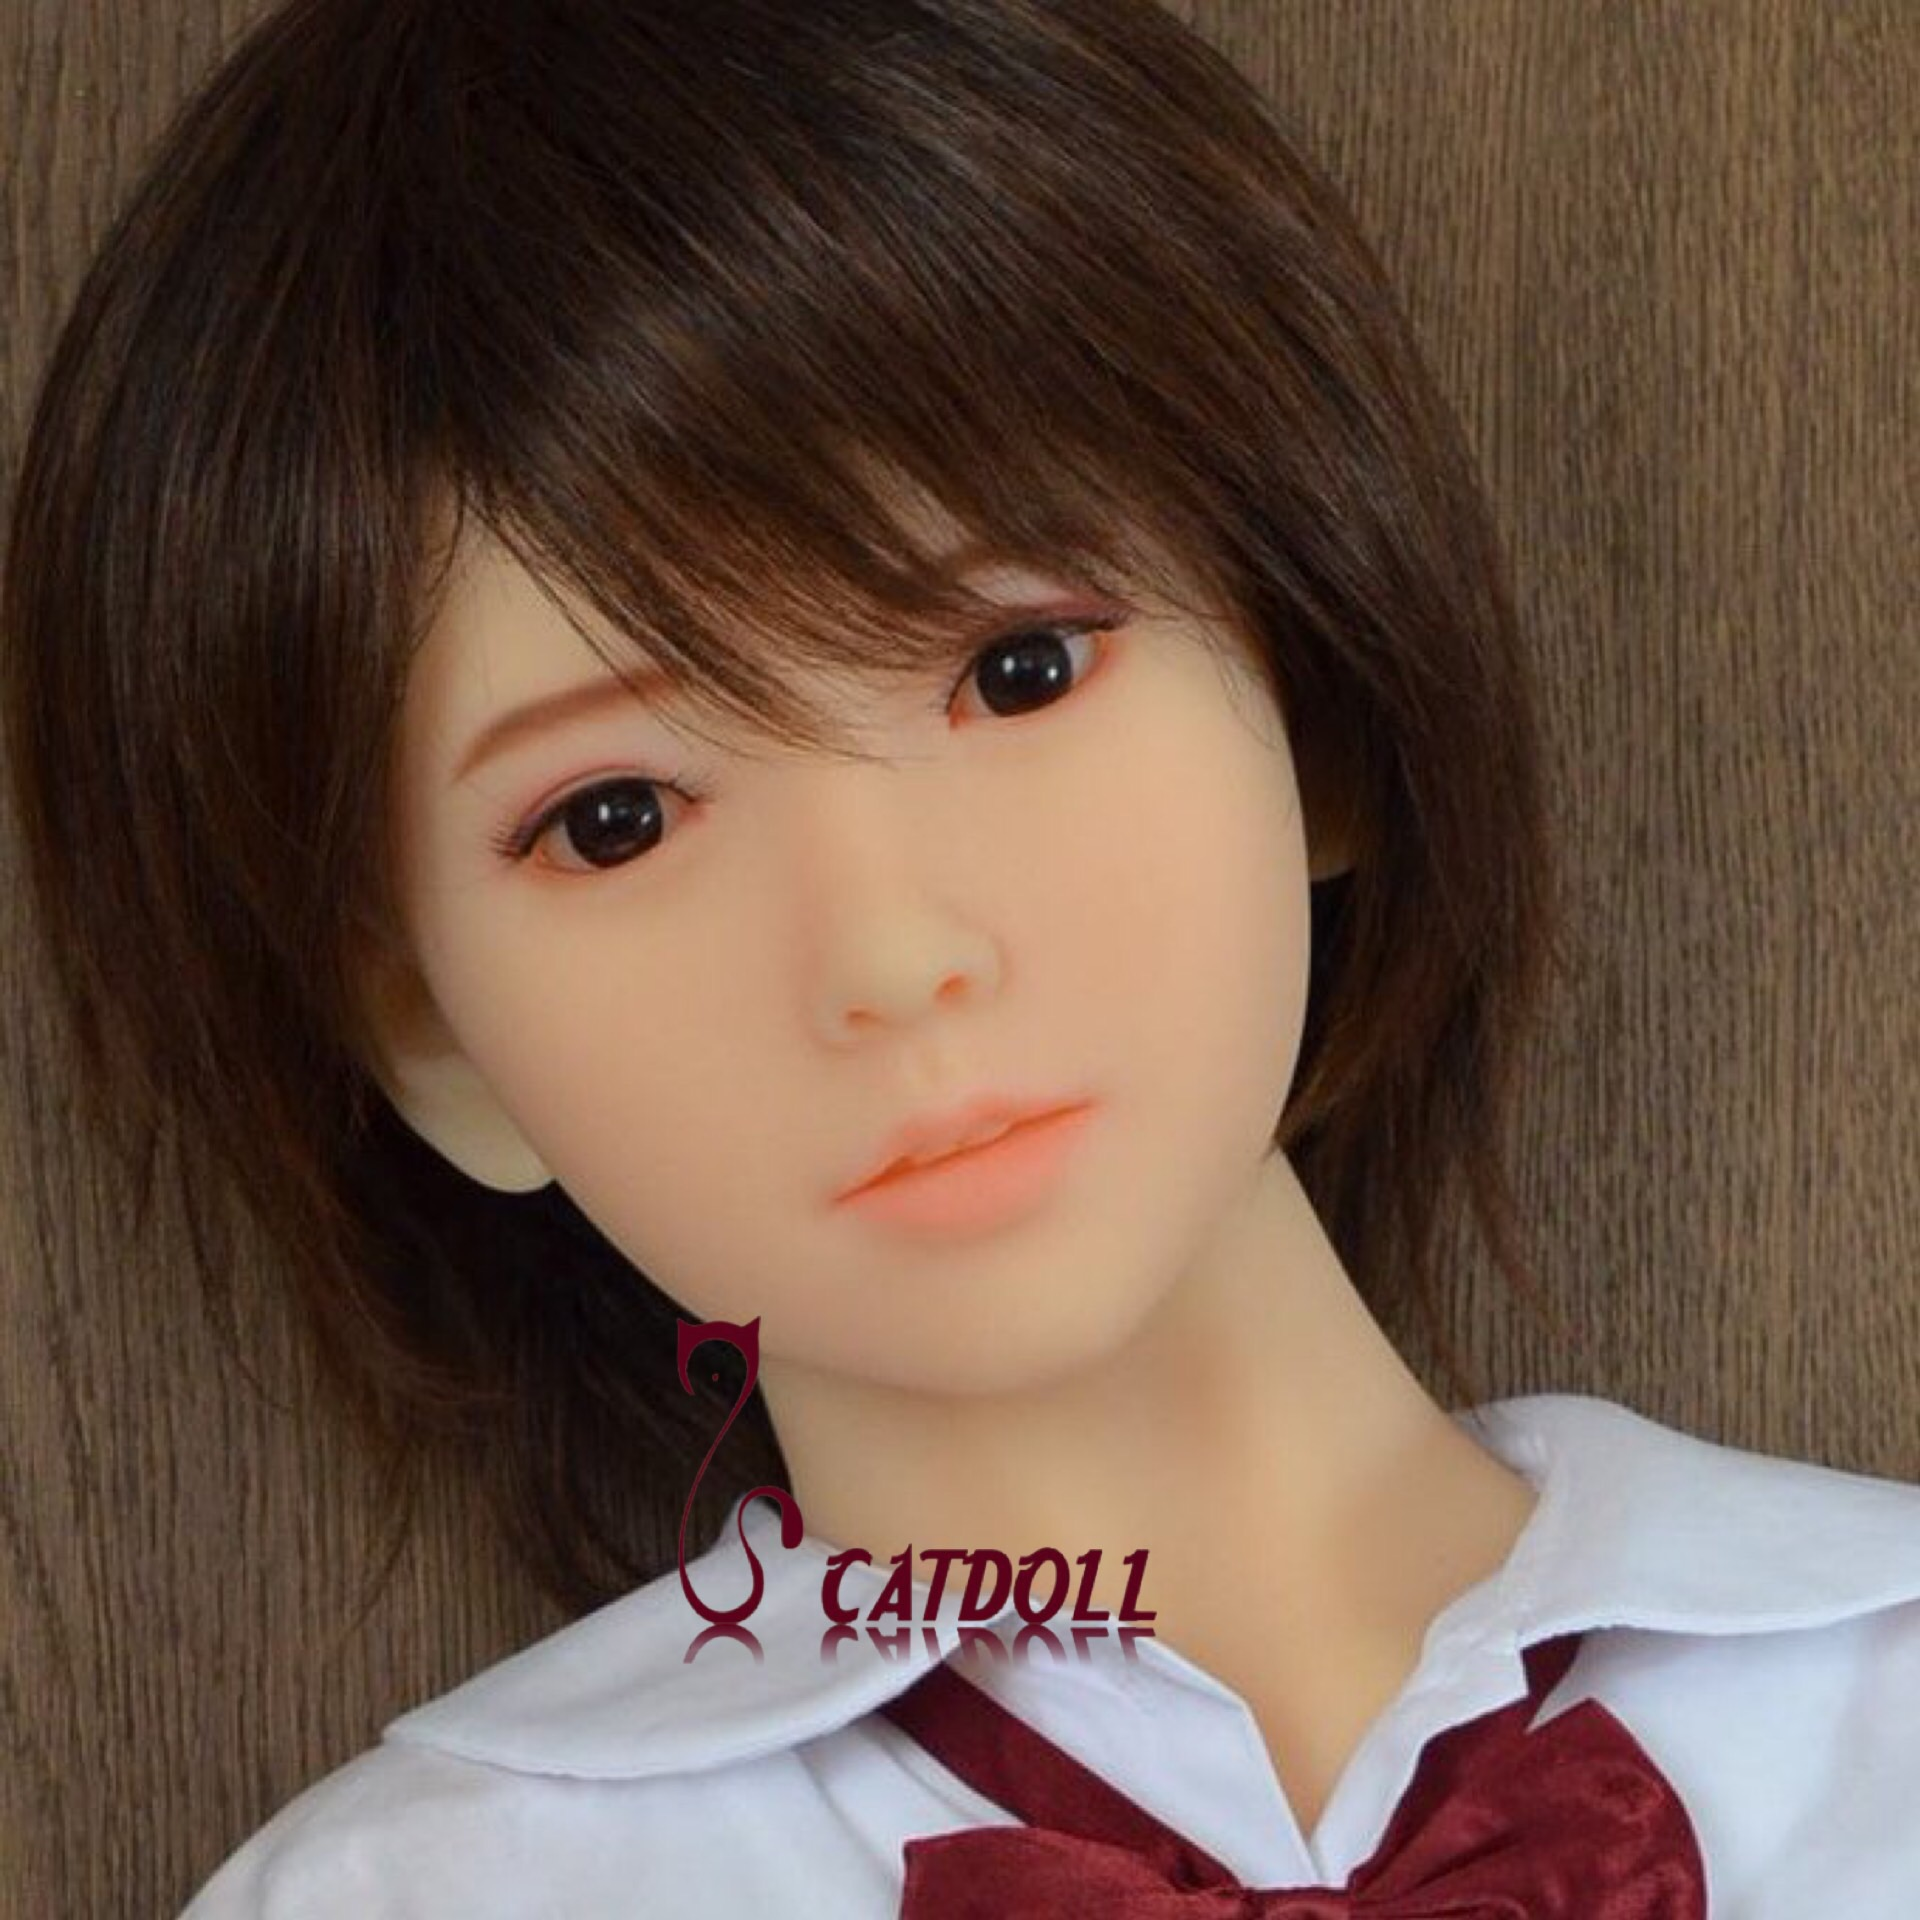 Top quality CATDOLL Japanese <font><b>sex</b></font> <font><b>doll</b></font> heads Tami for <font><b>136cm</b></font> <font><b>doll</b></font>,oral <font><b>sex</b></font> <font><b>doll</b></font> heads for 146cm <font><b>doll</b></font>,oral <font><b>sex</b></font> toy for adult image